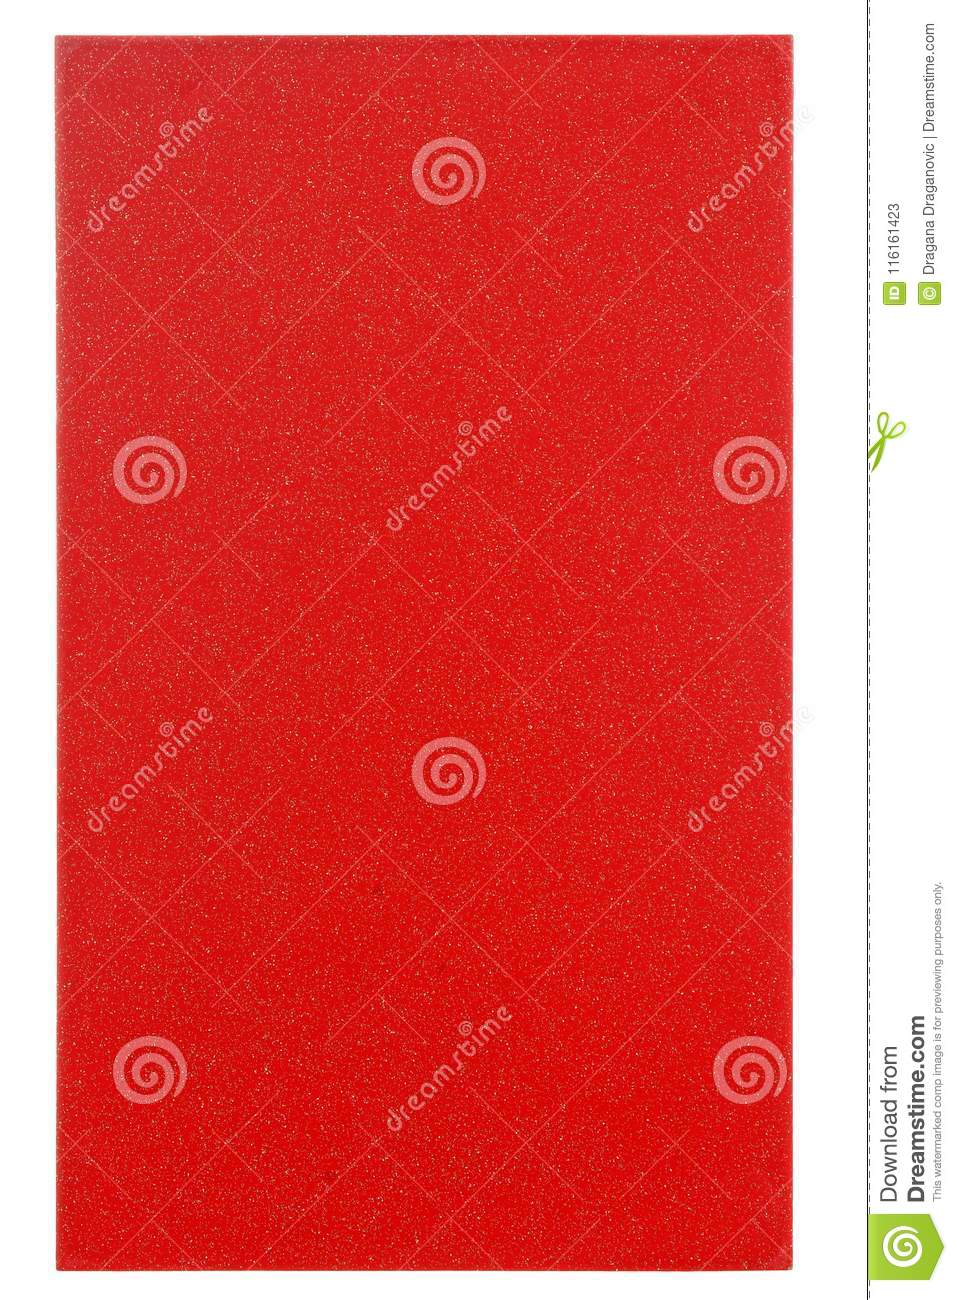 Red Paint On Tile Sprayed Beautiful Painted Surface Design Banners